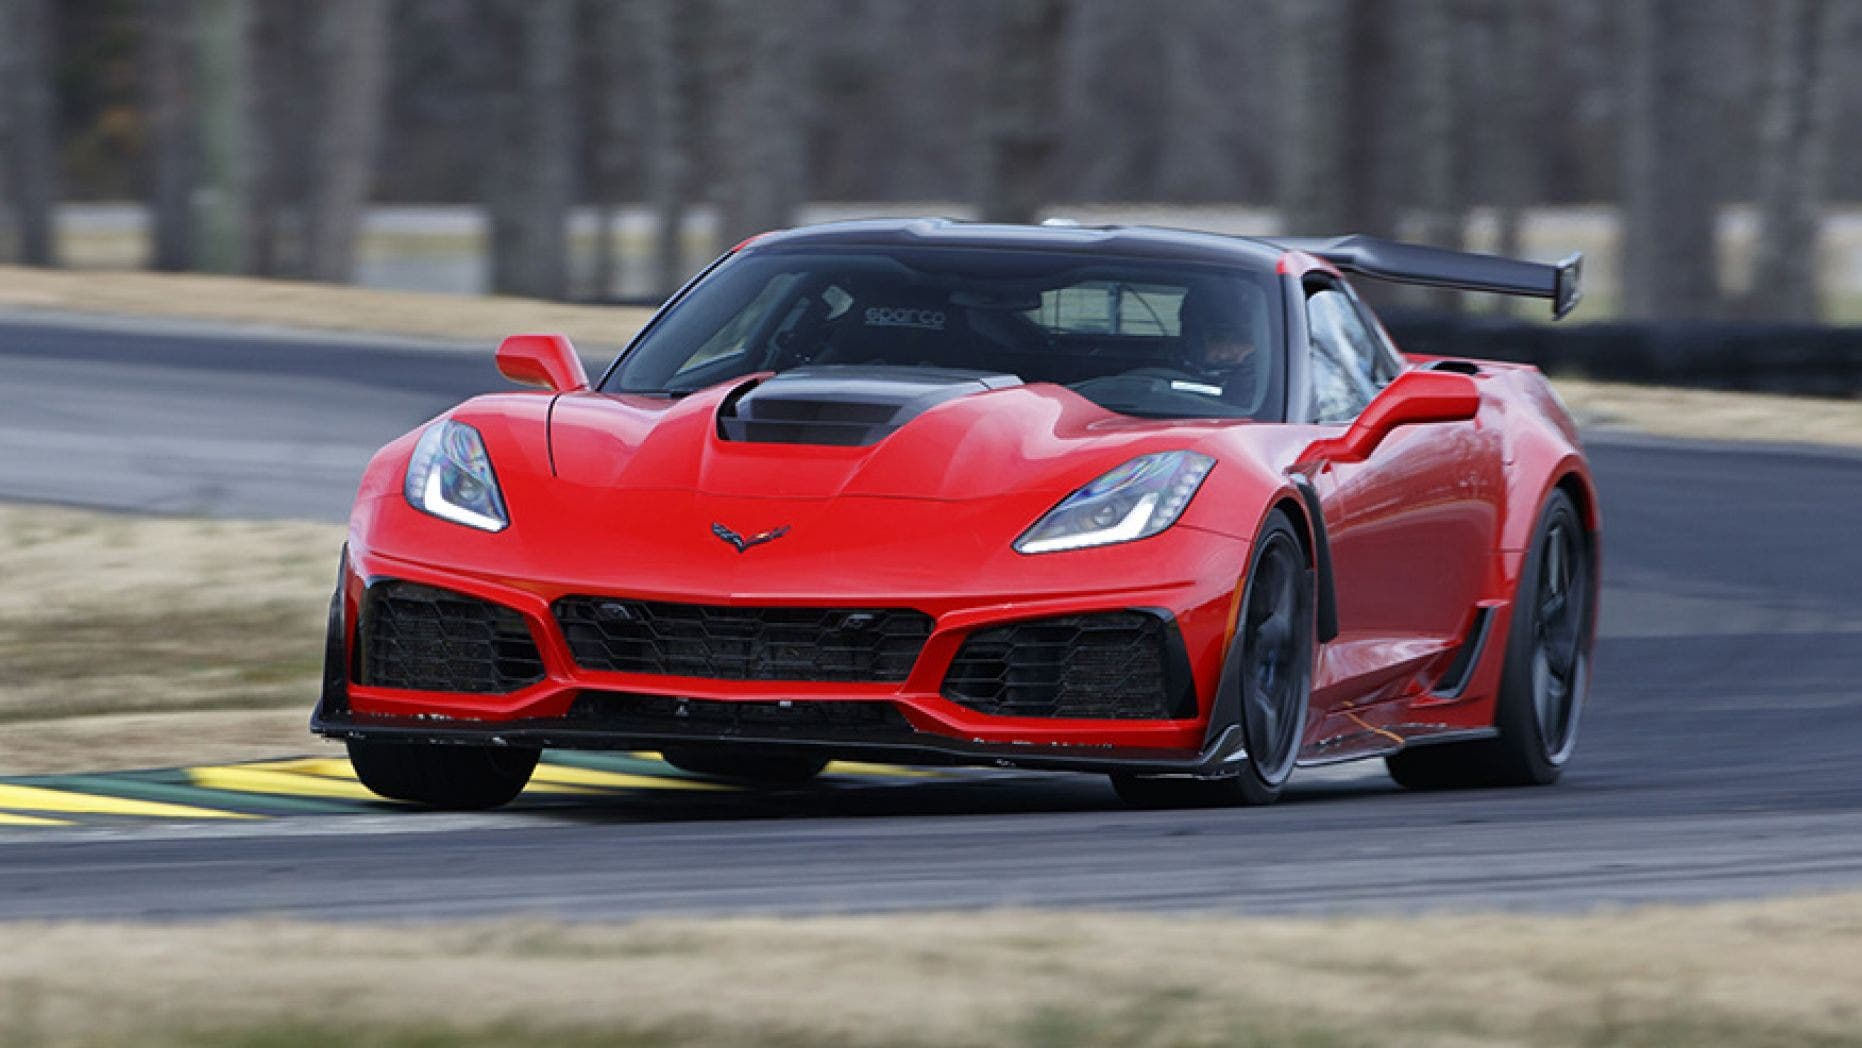 Most Powerful American Cars-2019 Chevrolet Corvette ZR1